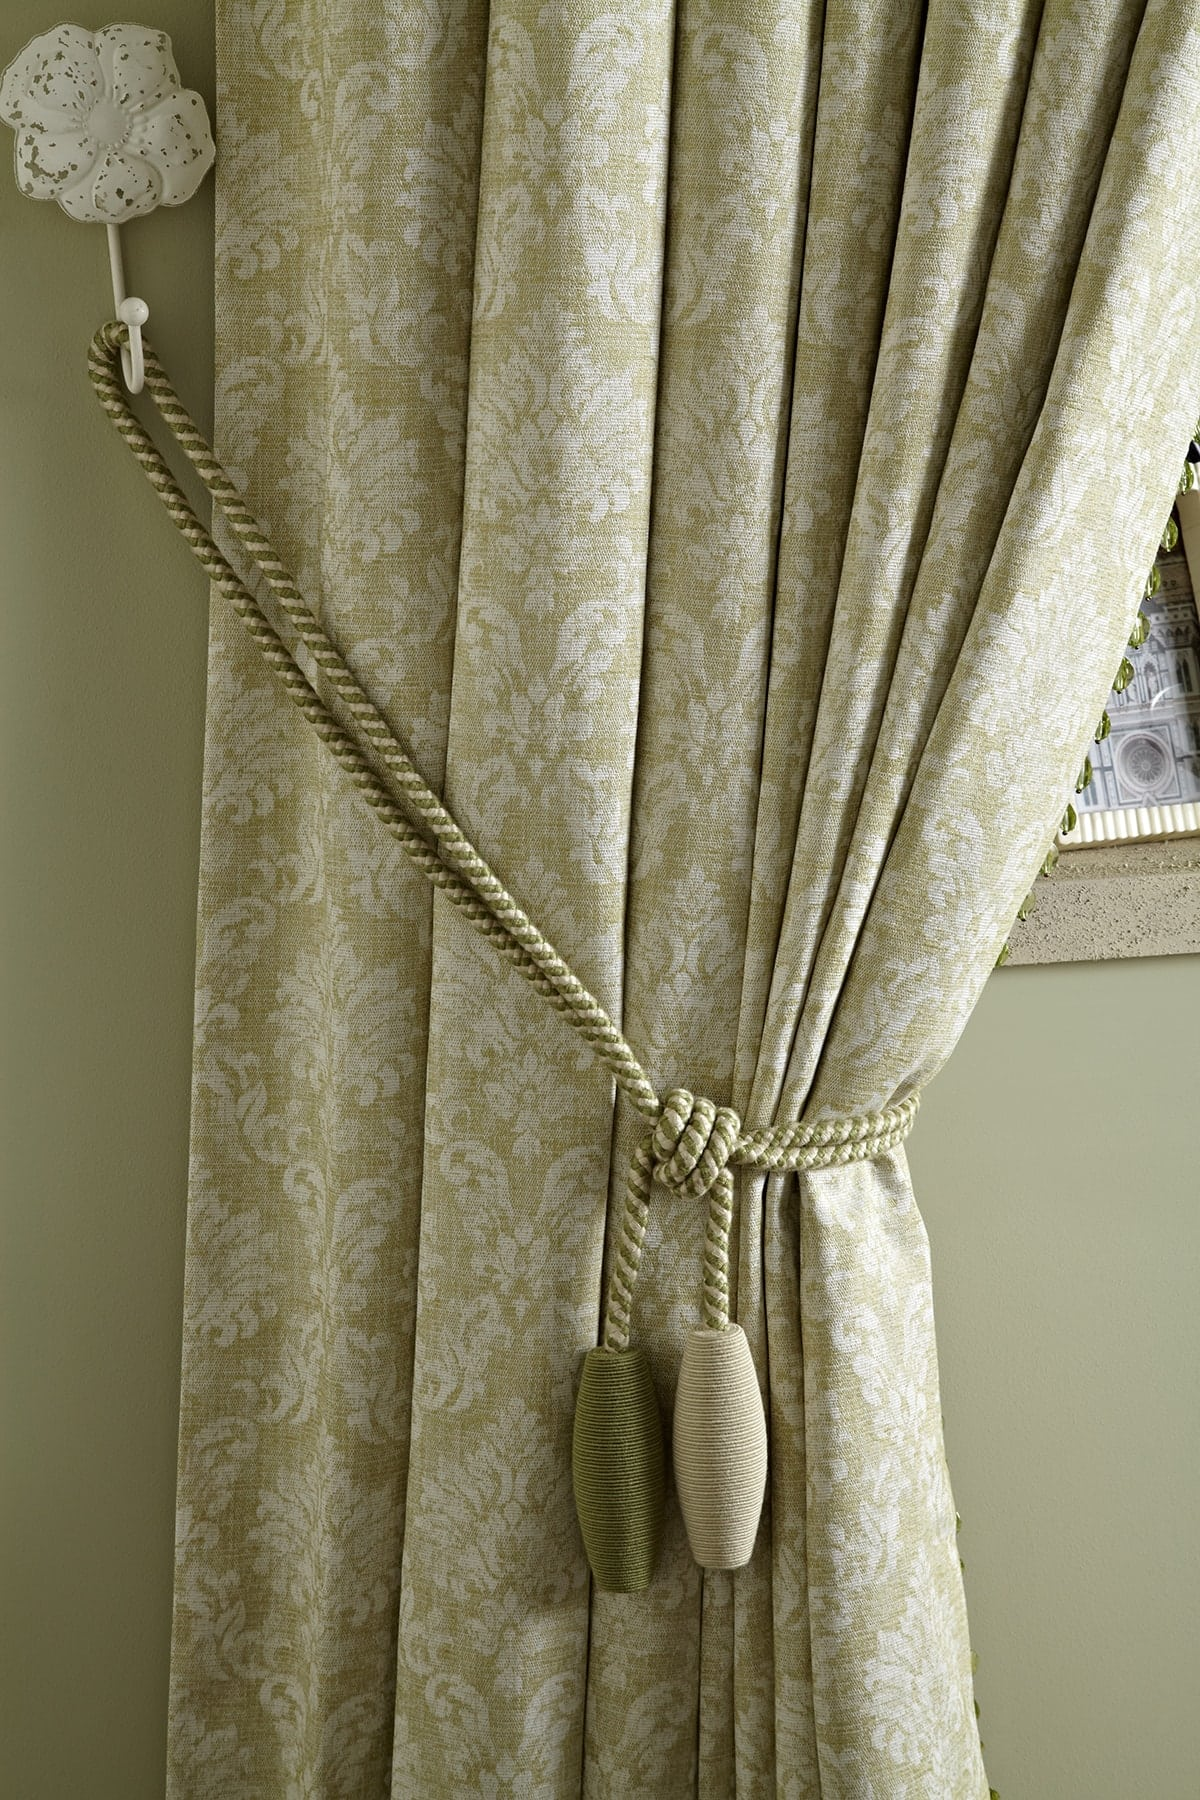 curtain tie backs norwich sunblinds. Black Bedroom Furniture Sets. Home Design Ideas